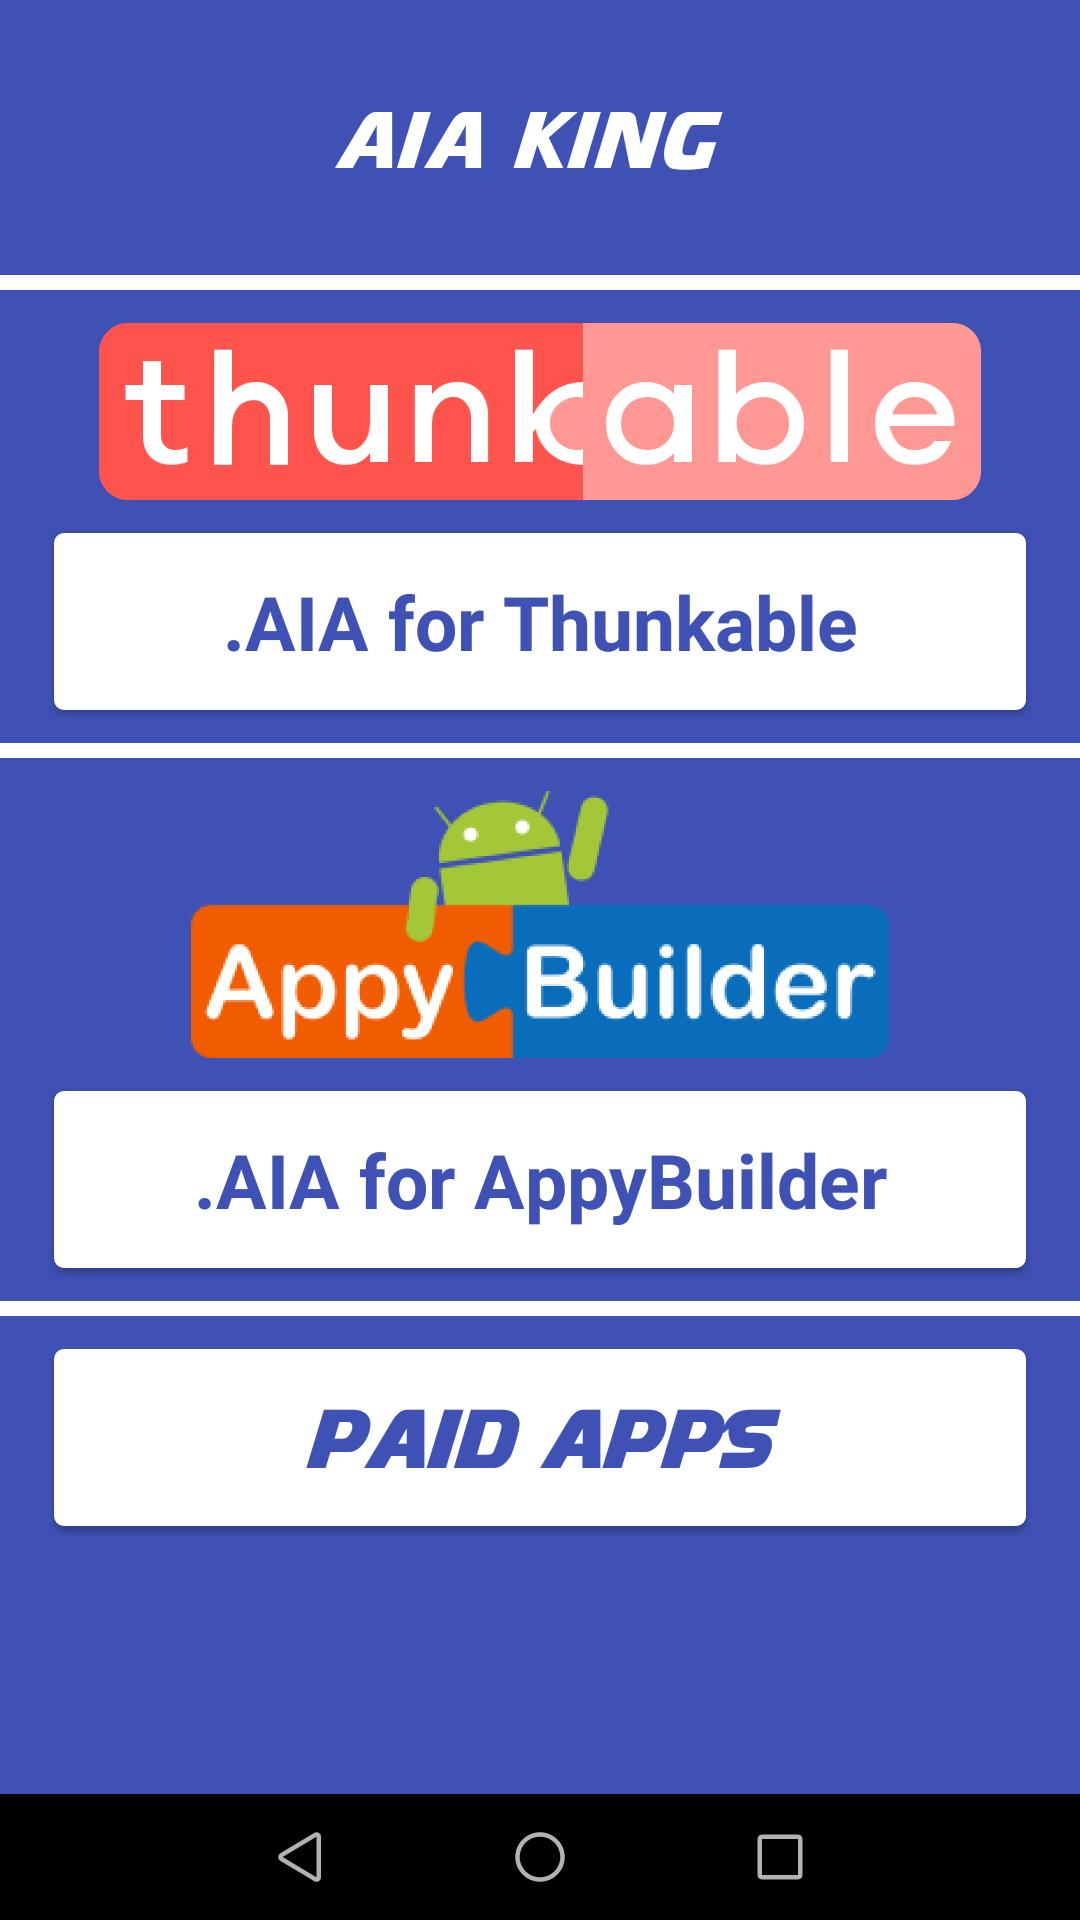 AIA King (Thunkable & Appybuilder AIA File) for Android - APK Download